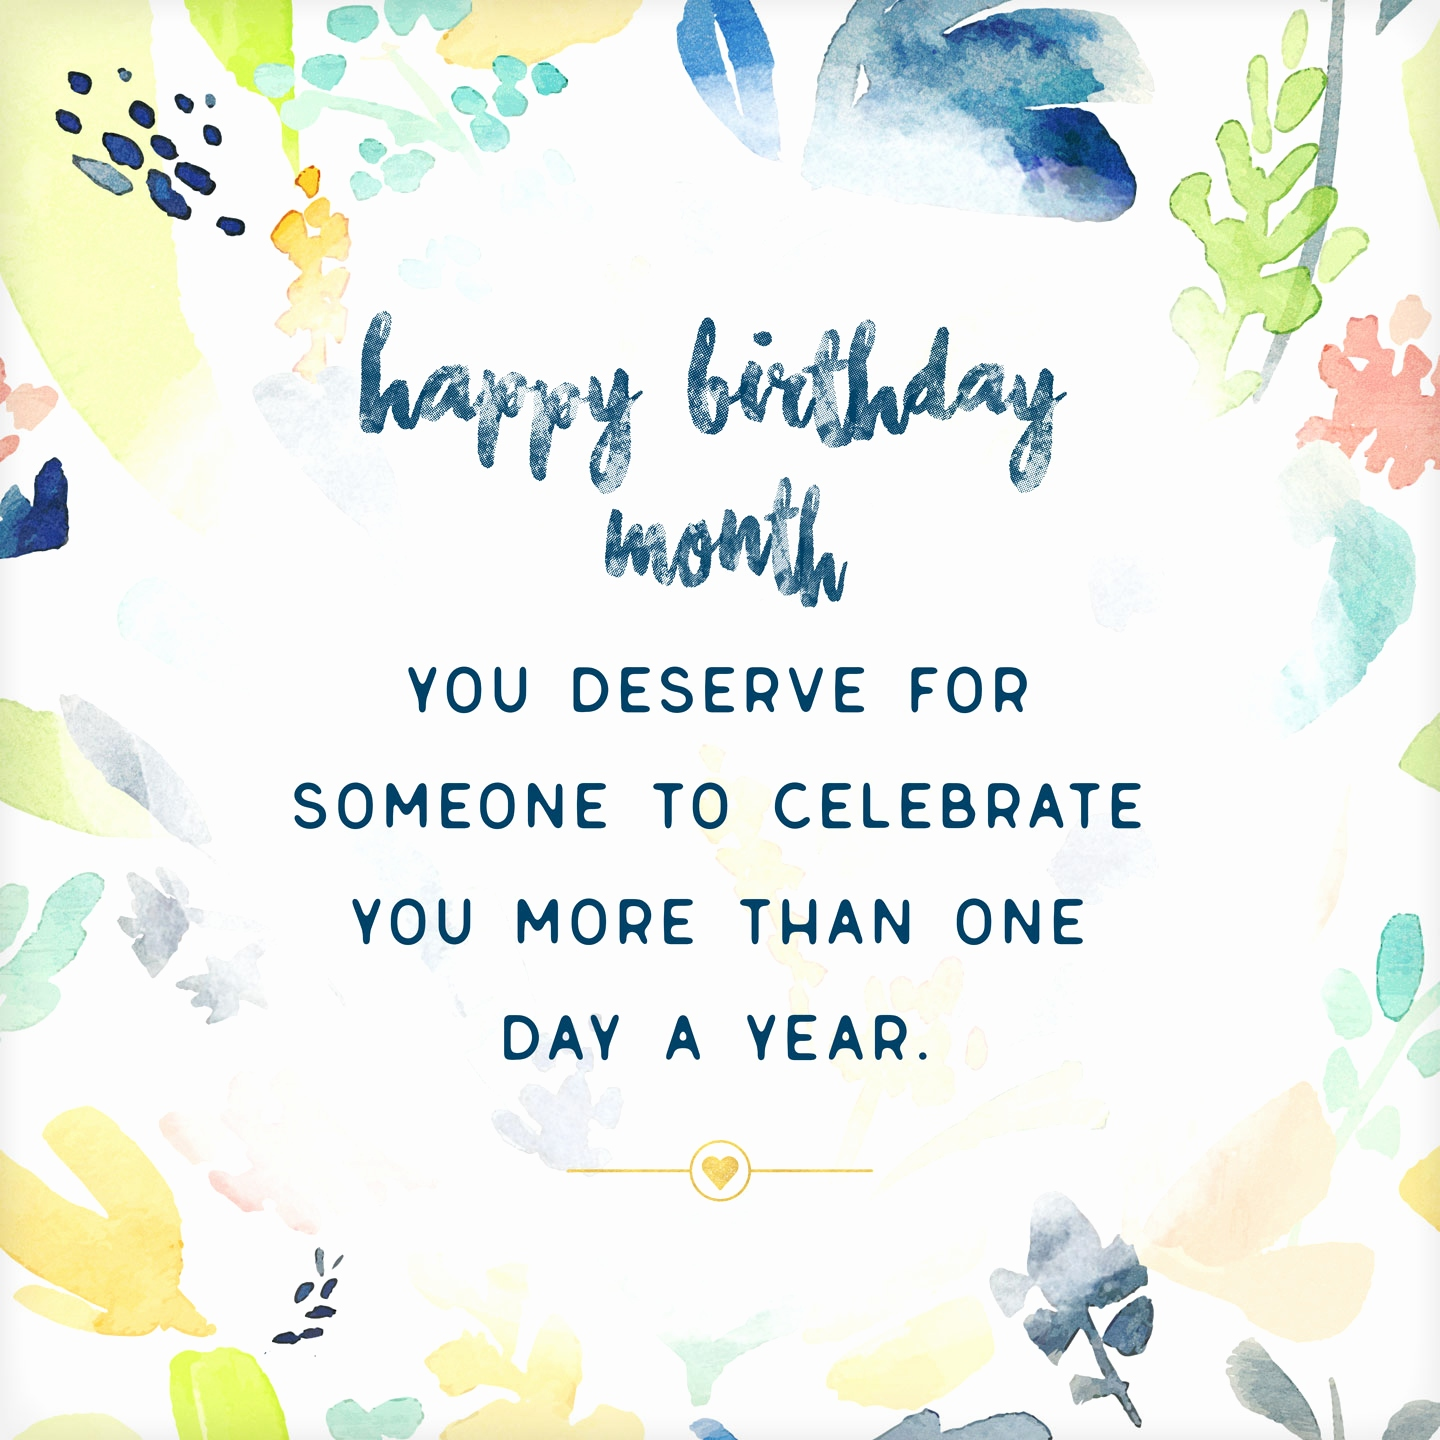 birthday greetings to write in a card ; son-birthday-card-messages-luxury-what-to-write-in-a-birthday-card-48-birthday-messages-and-wishes-of-son-birthday-card-messages